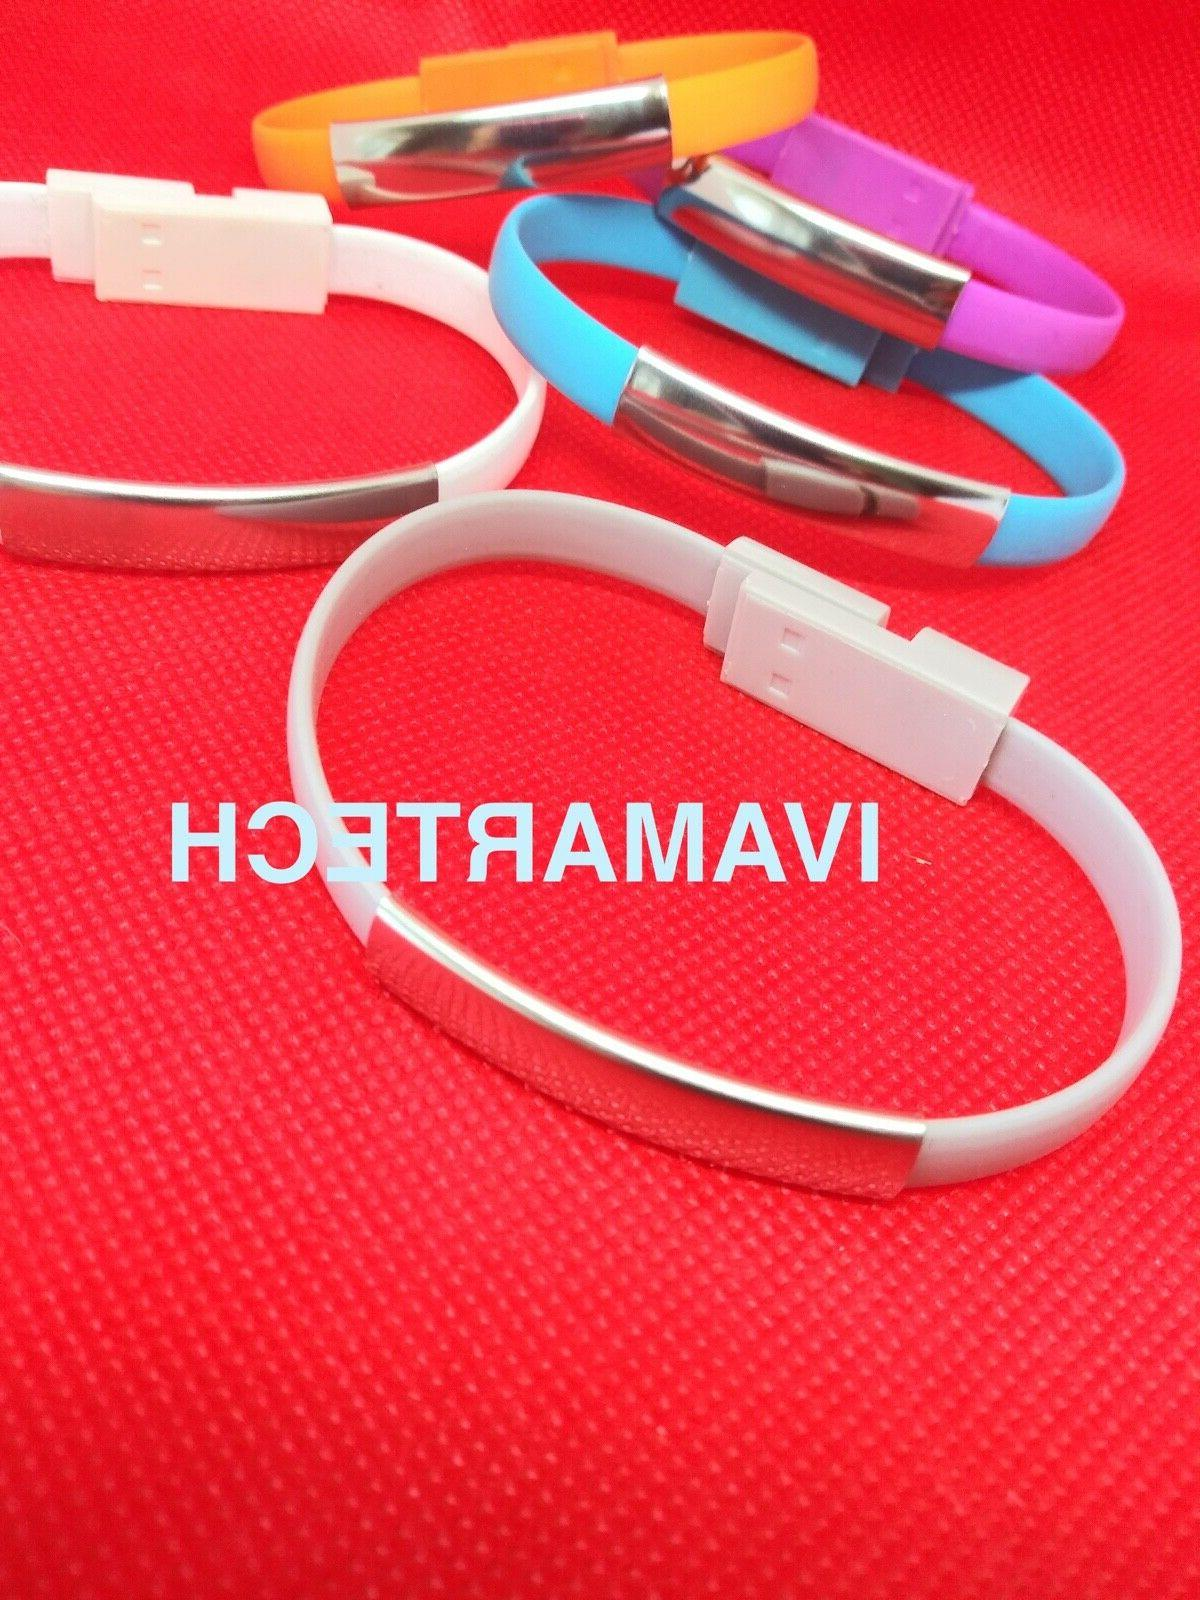 charger Cable Portable wrist sync